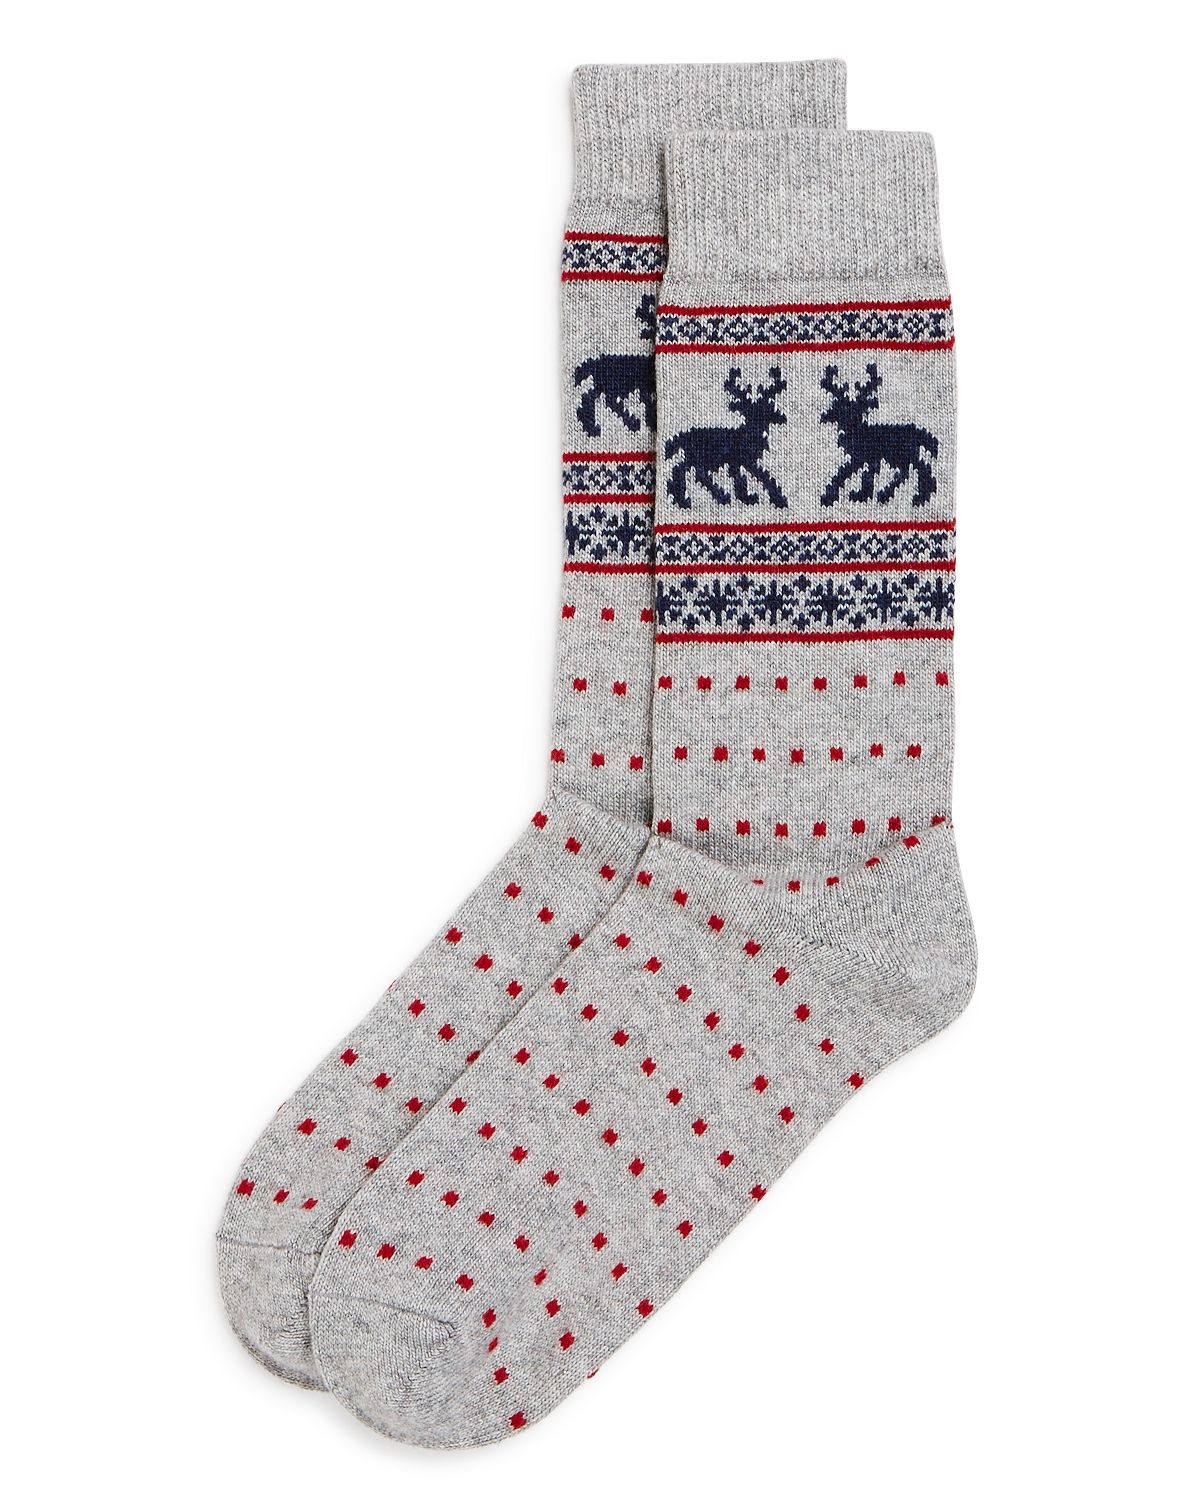 The Men's Store Fair-isle Reindeer Dotted Socks Gray